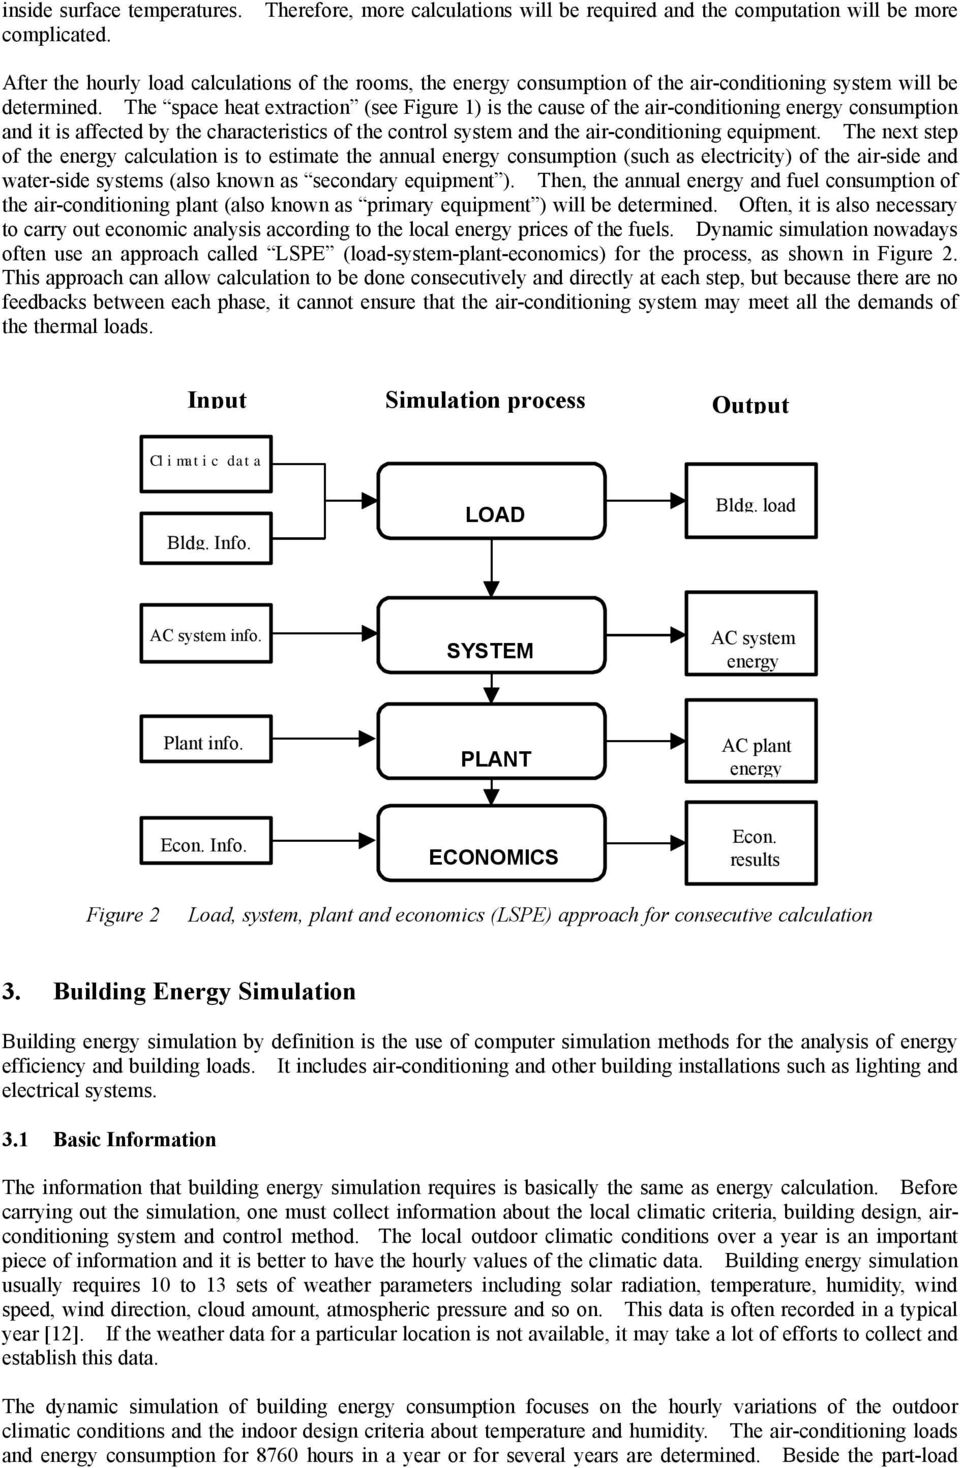 The space heat extraction (see Figure 1) is the cause of the air-conditioning energy consumption and it is affected by the characteristics of the control system and the air-conditioning equipment.